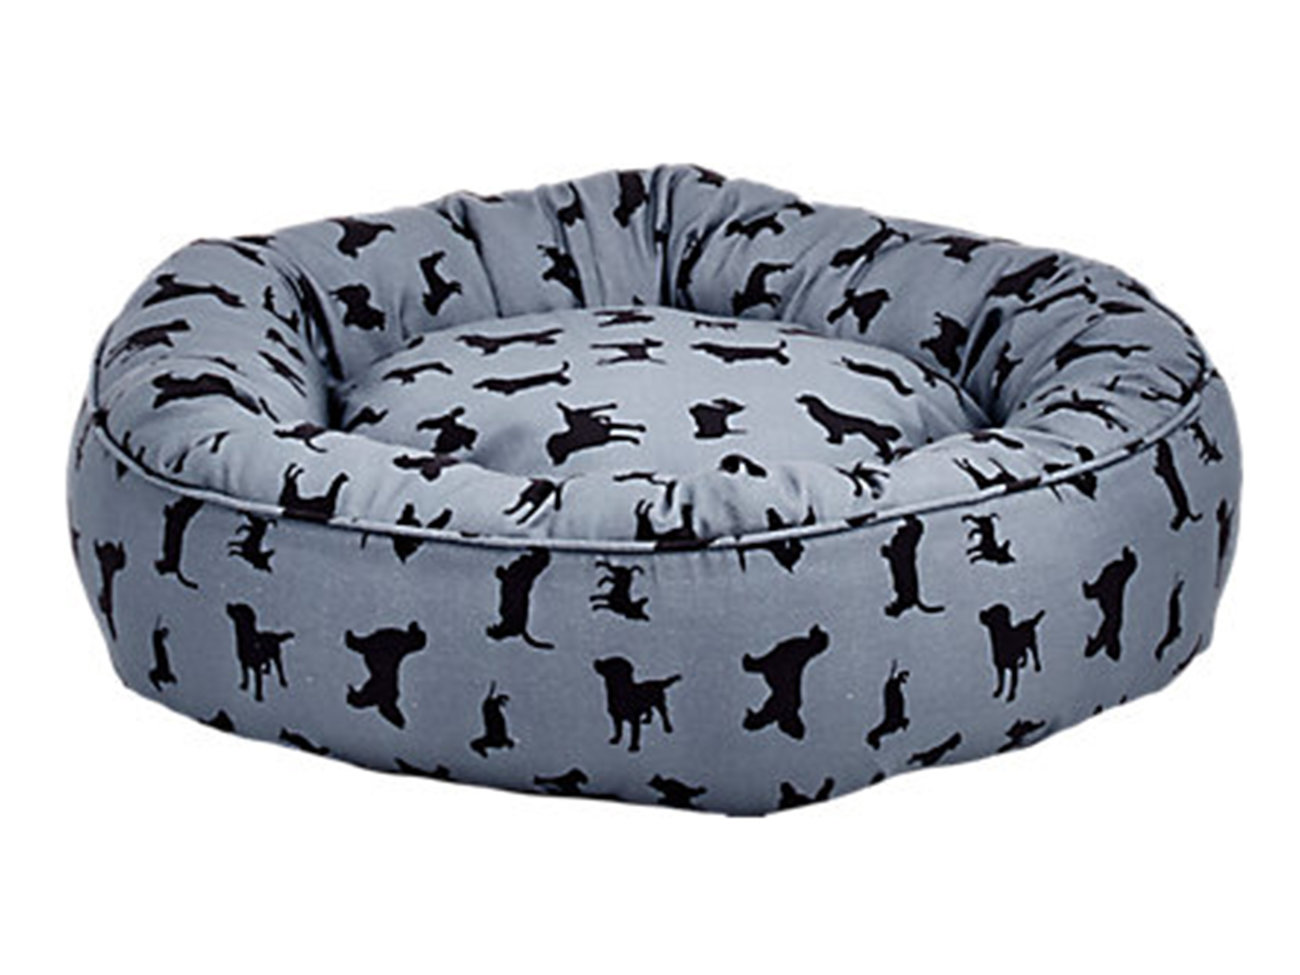 Le-Roar-Dog-Bed-petGG1215.jpg